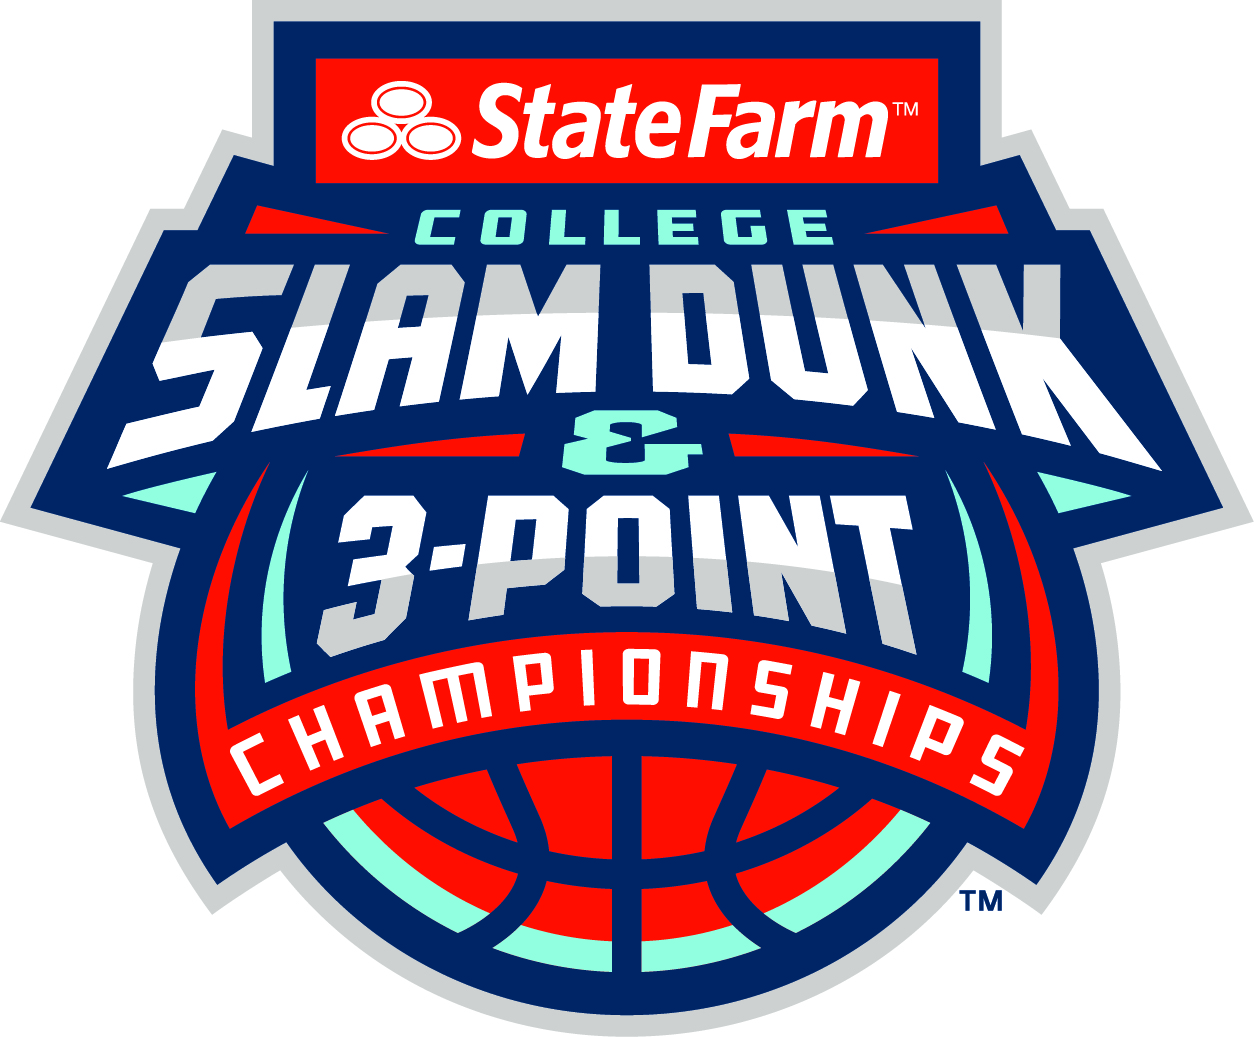 State Fam College Slam Dunk & 3-Point Championships logo